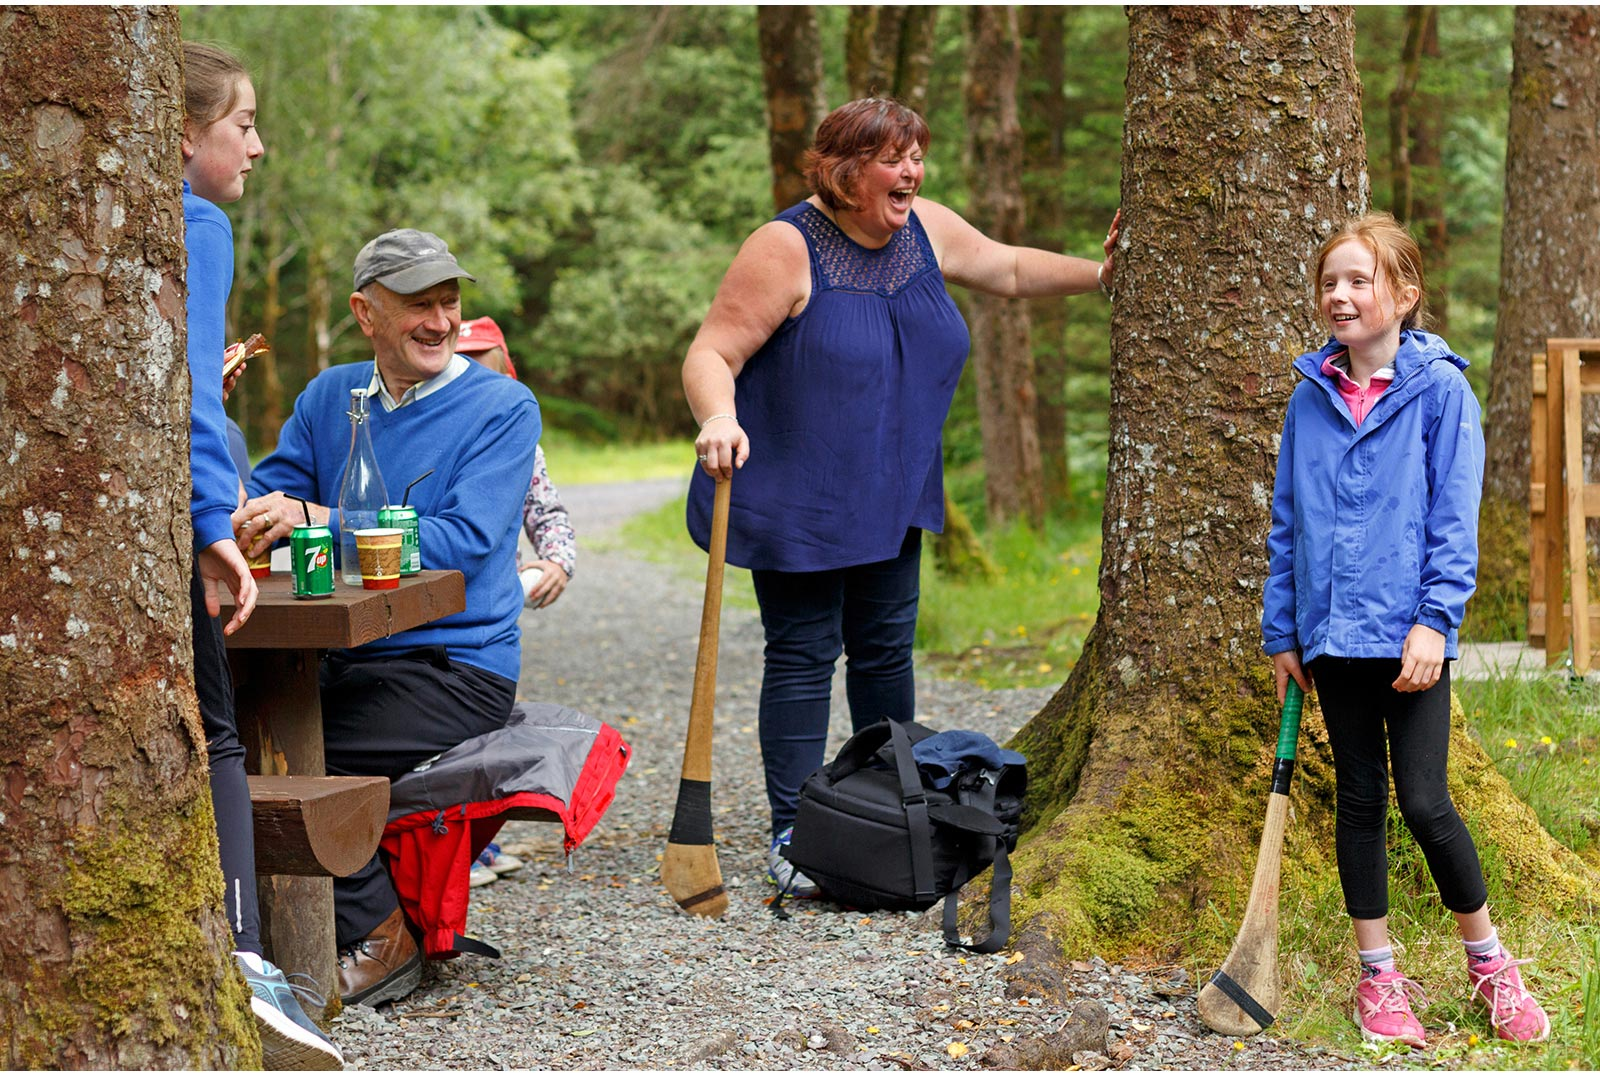 3 generations of the family share a laugh during a picnic in the forest